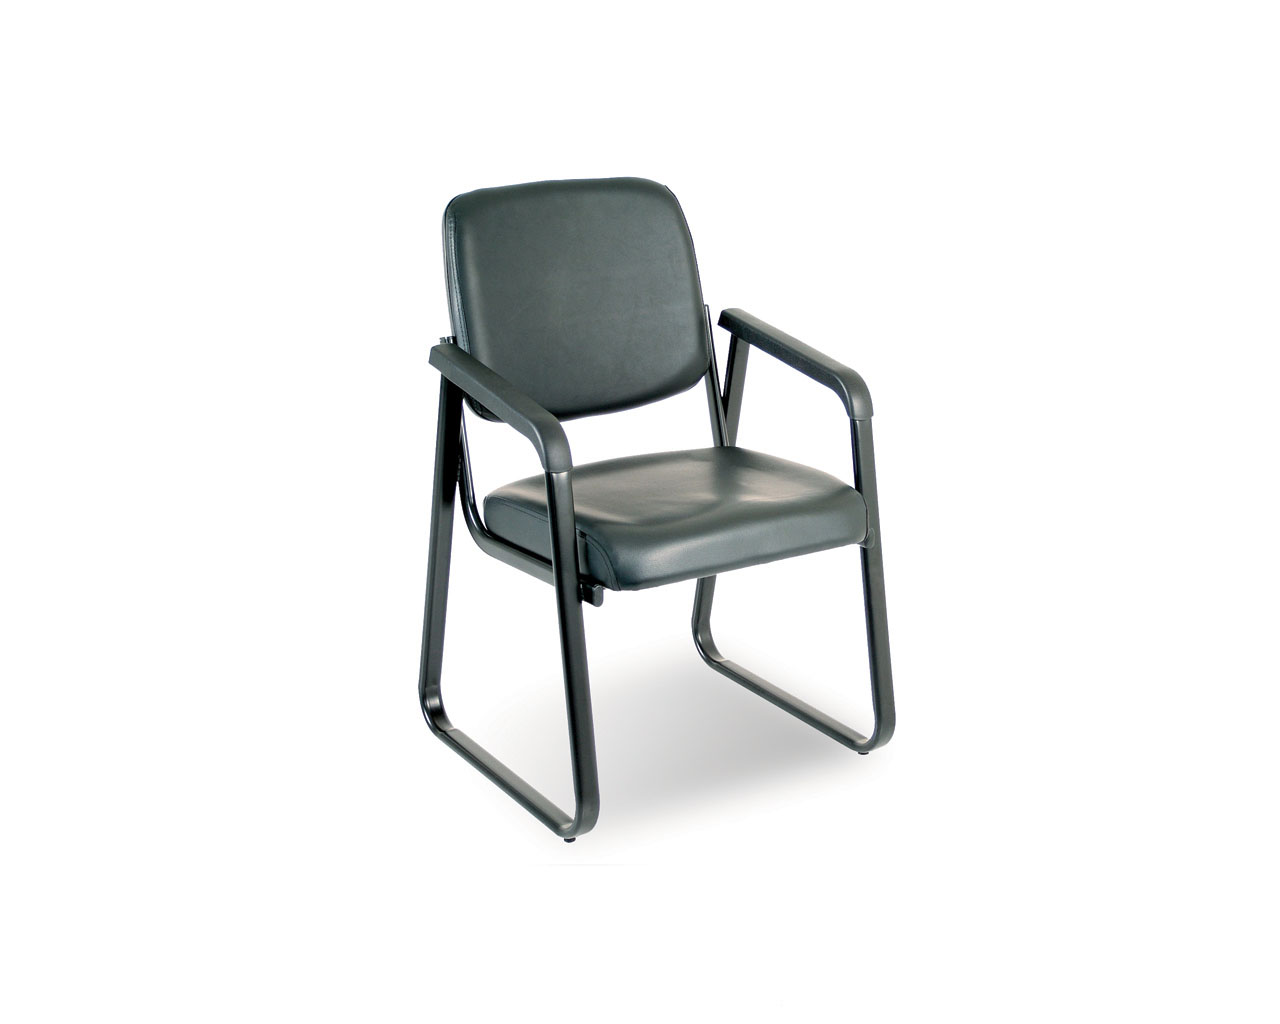 Ashton Guest Chair in Bonded Leather